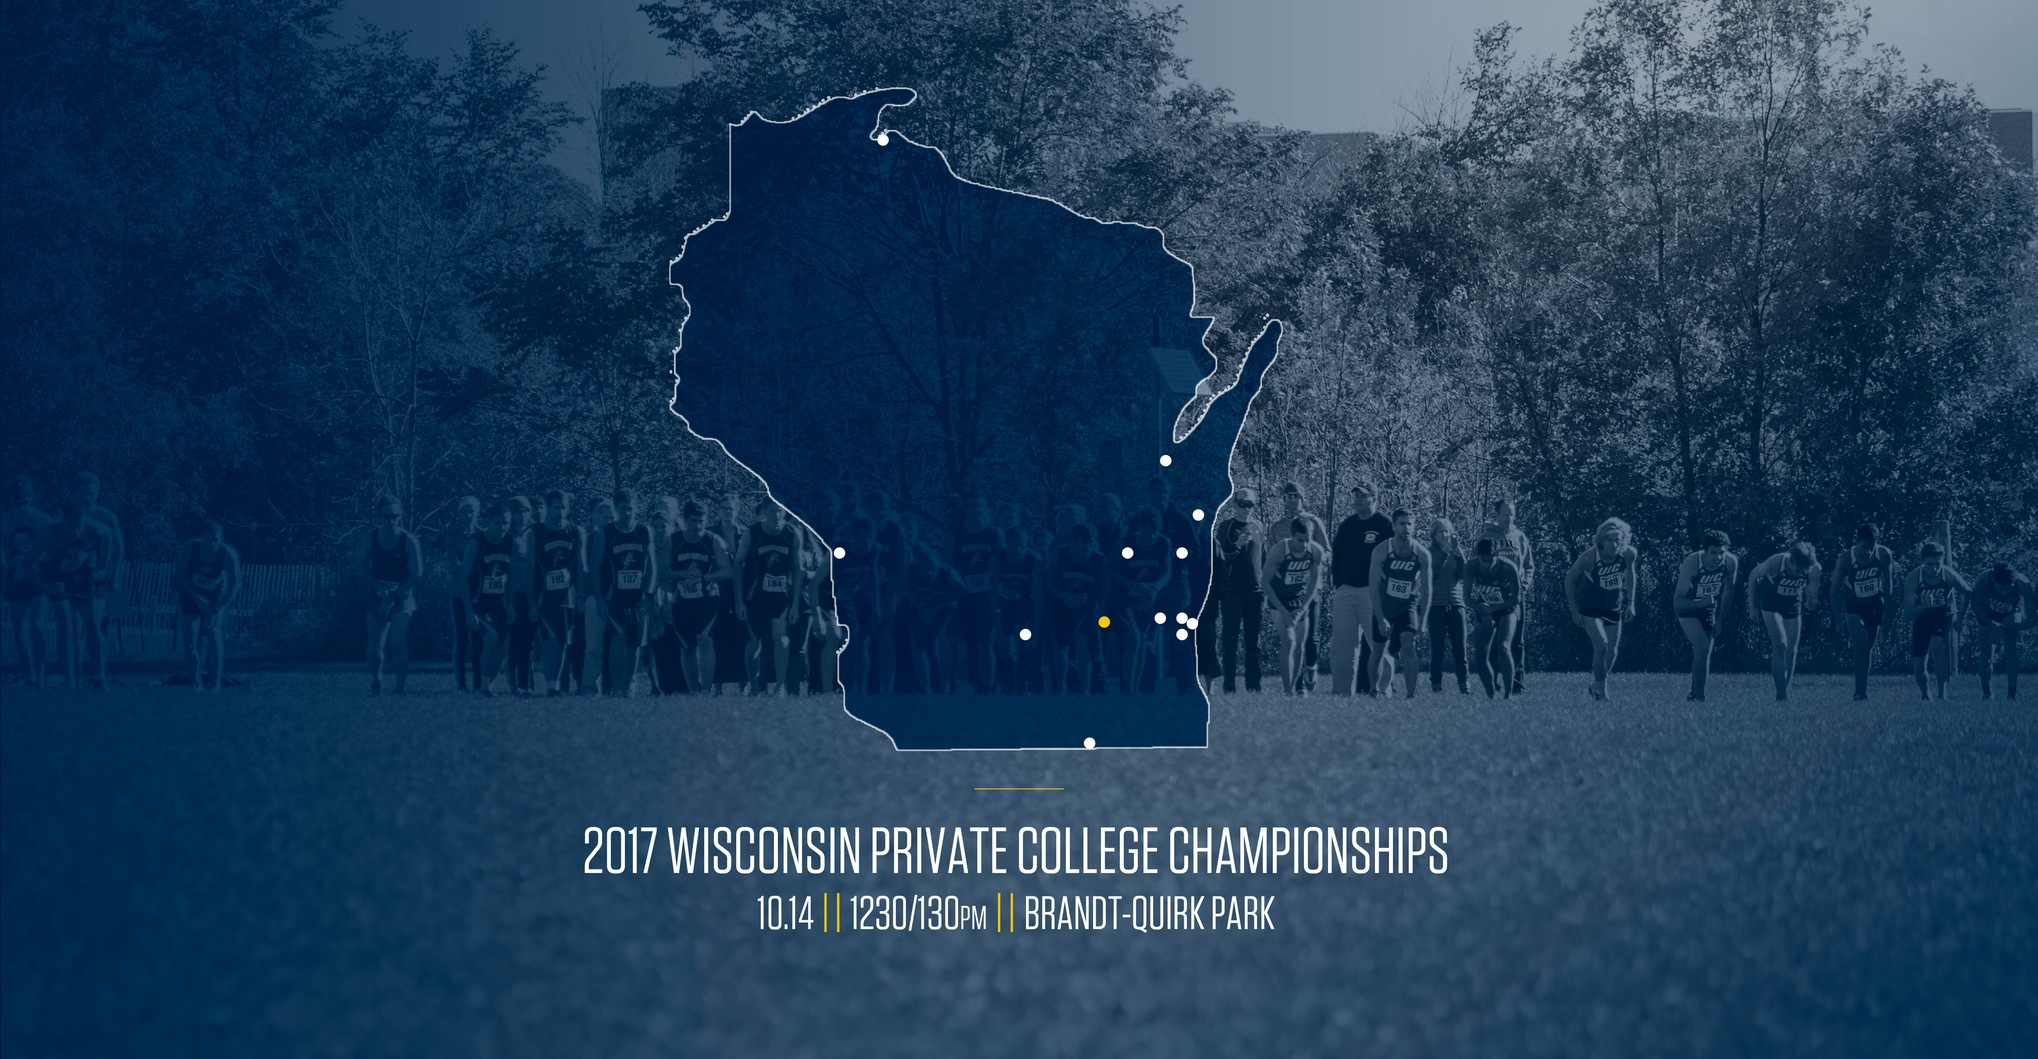 Maranatha to Host Wisconsin Private College Championships